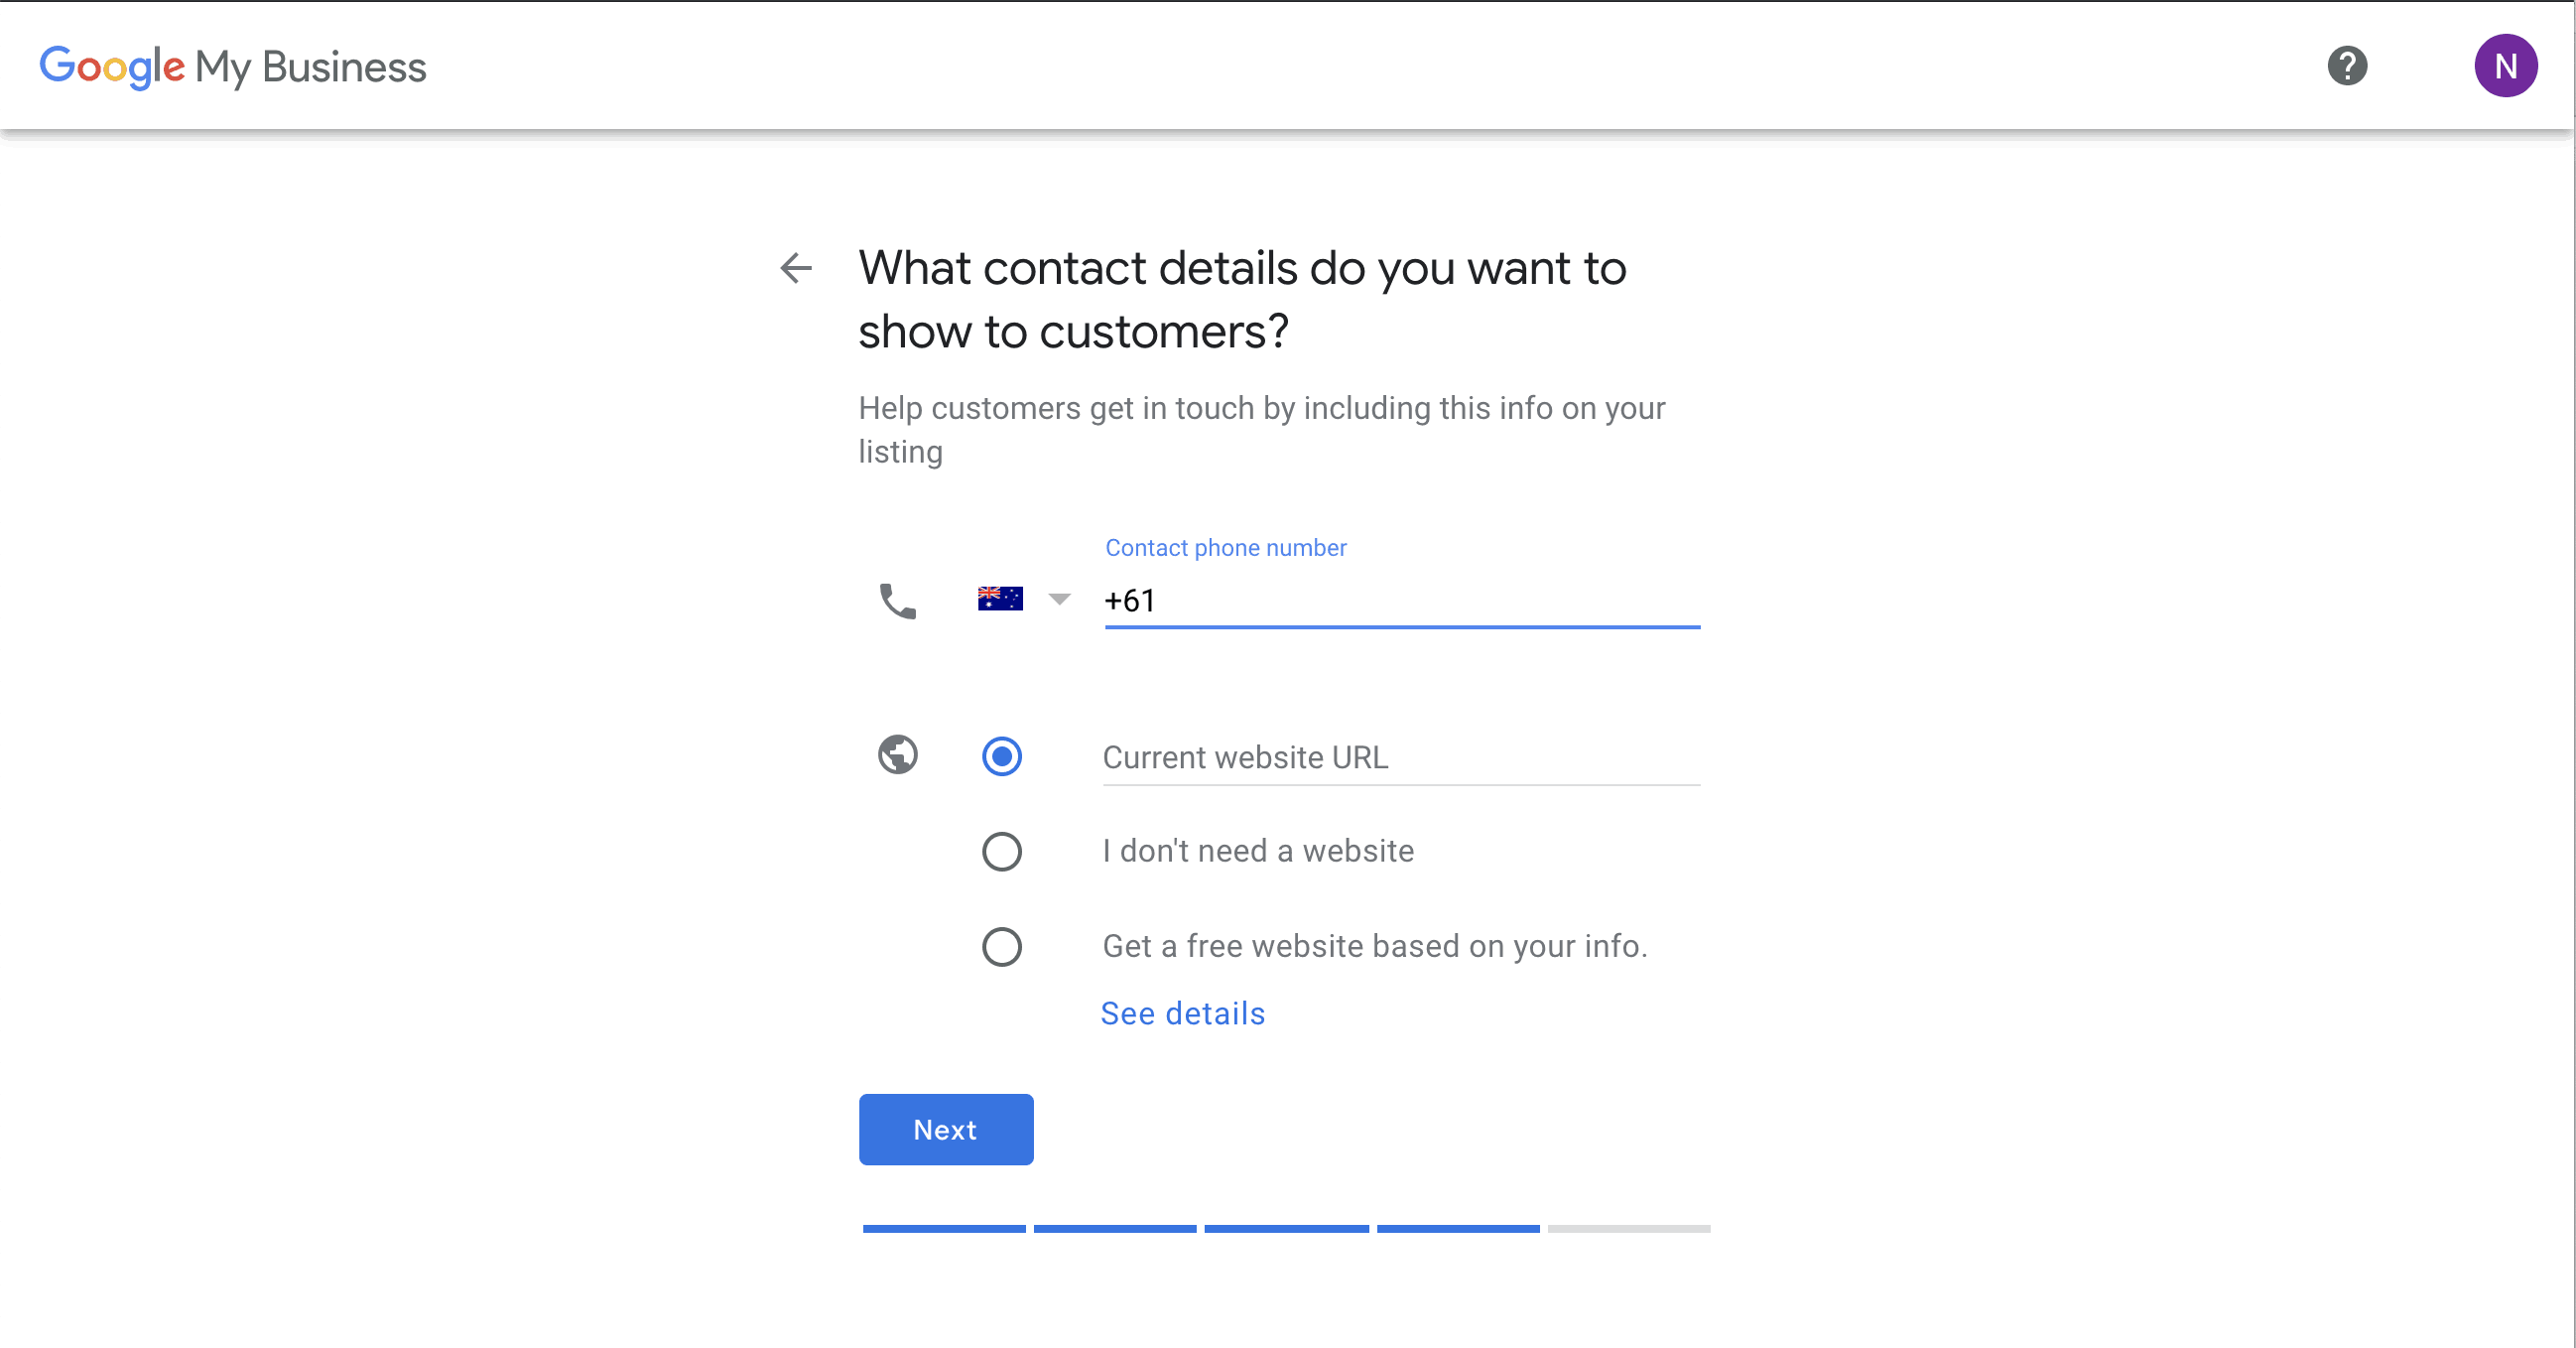 Google My Business - Contact Details